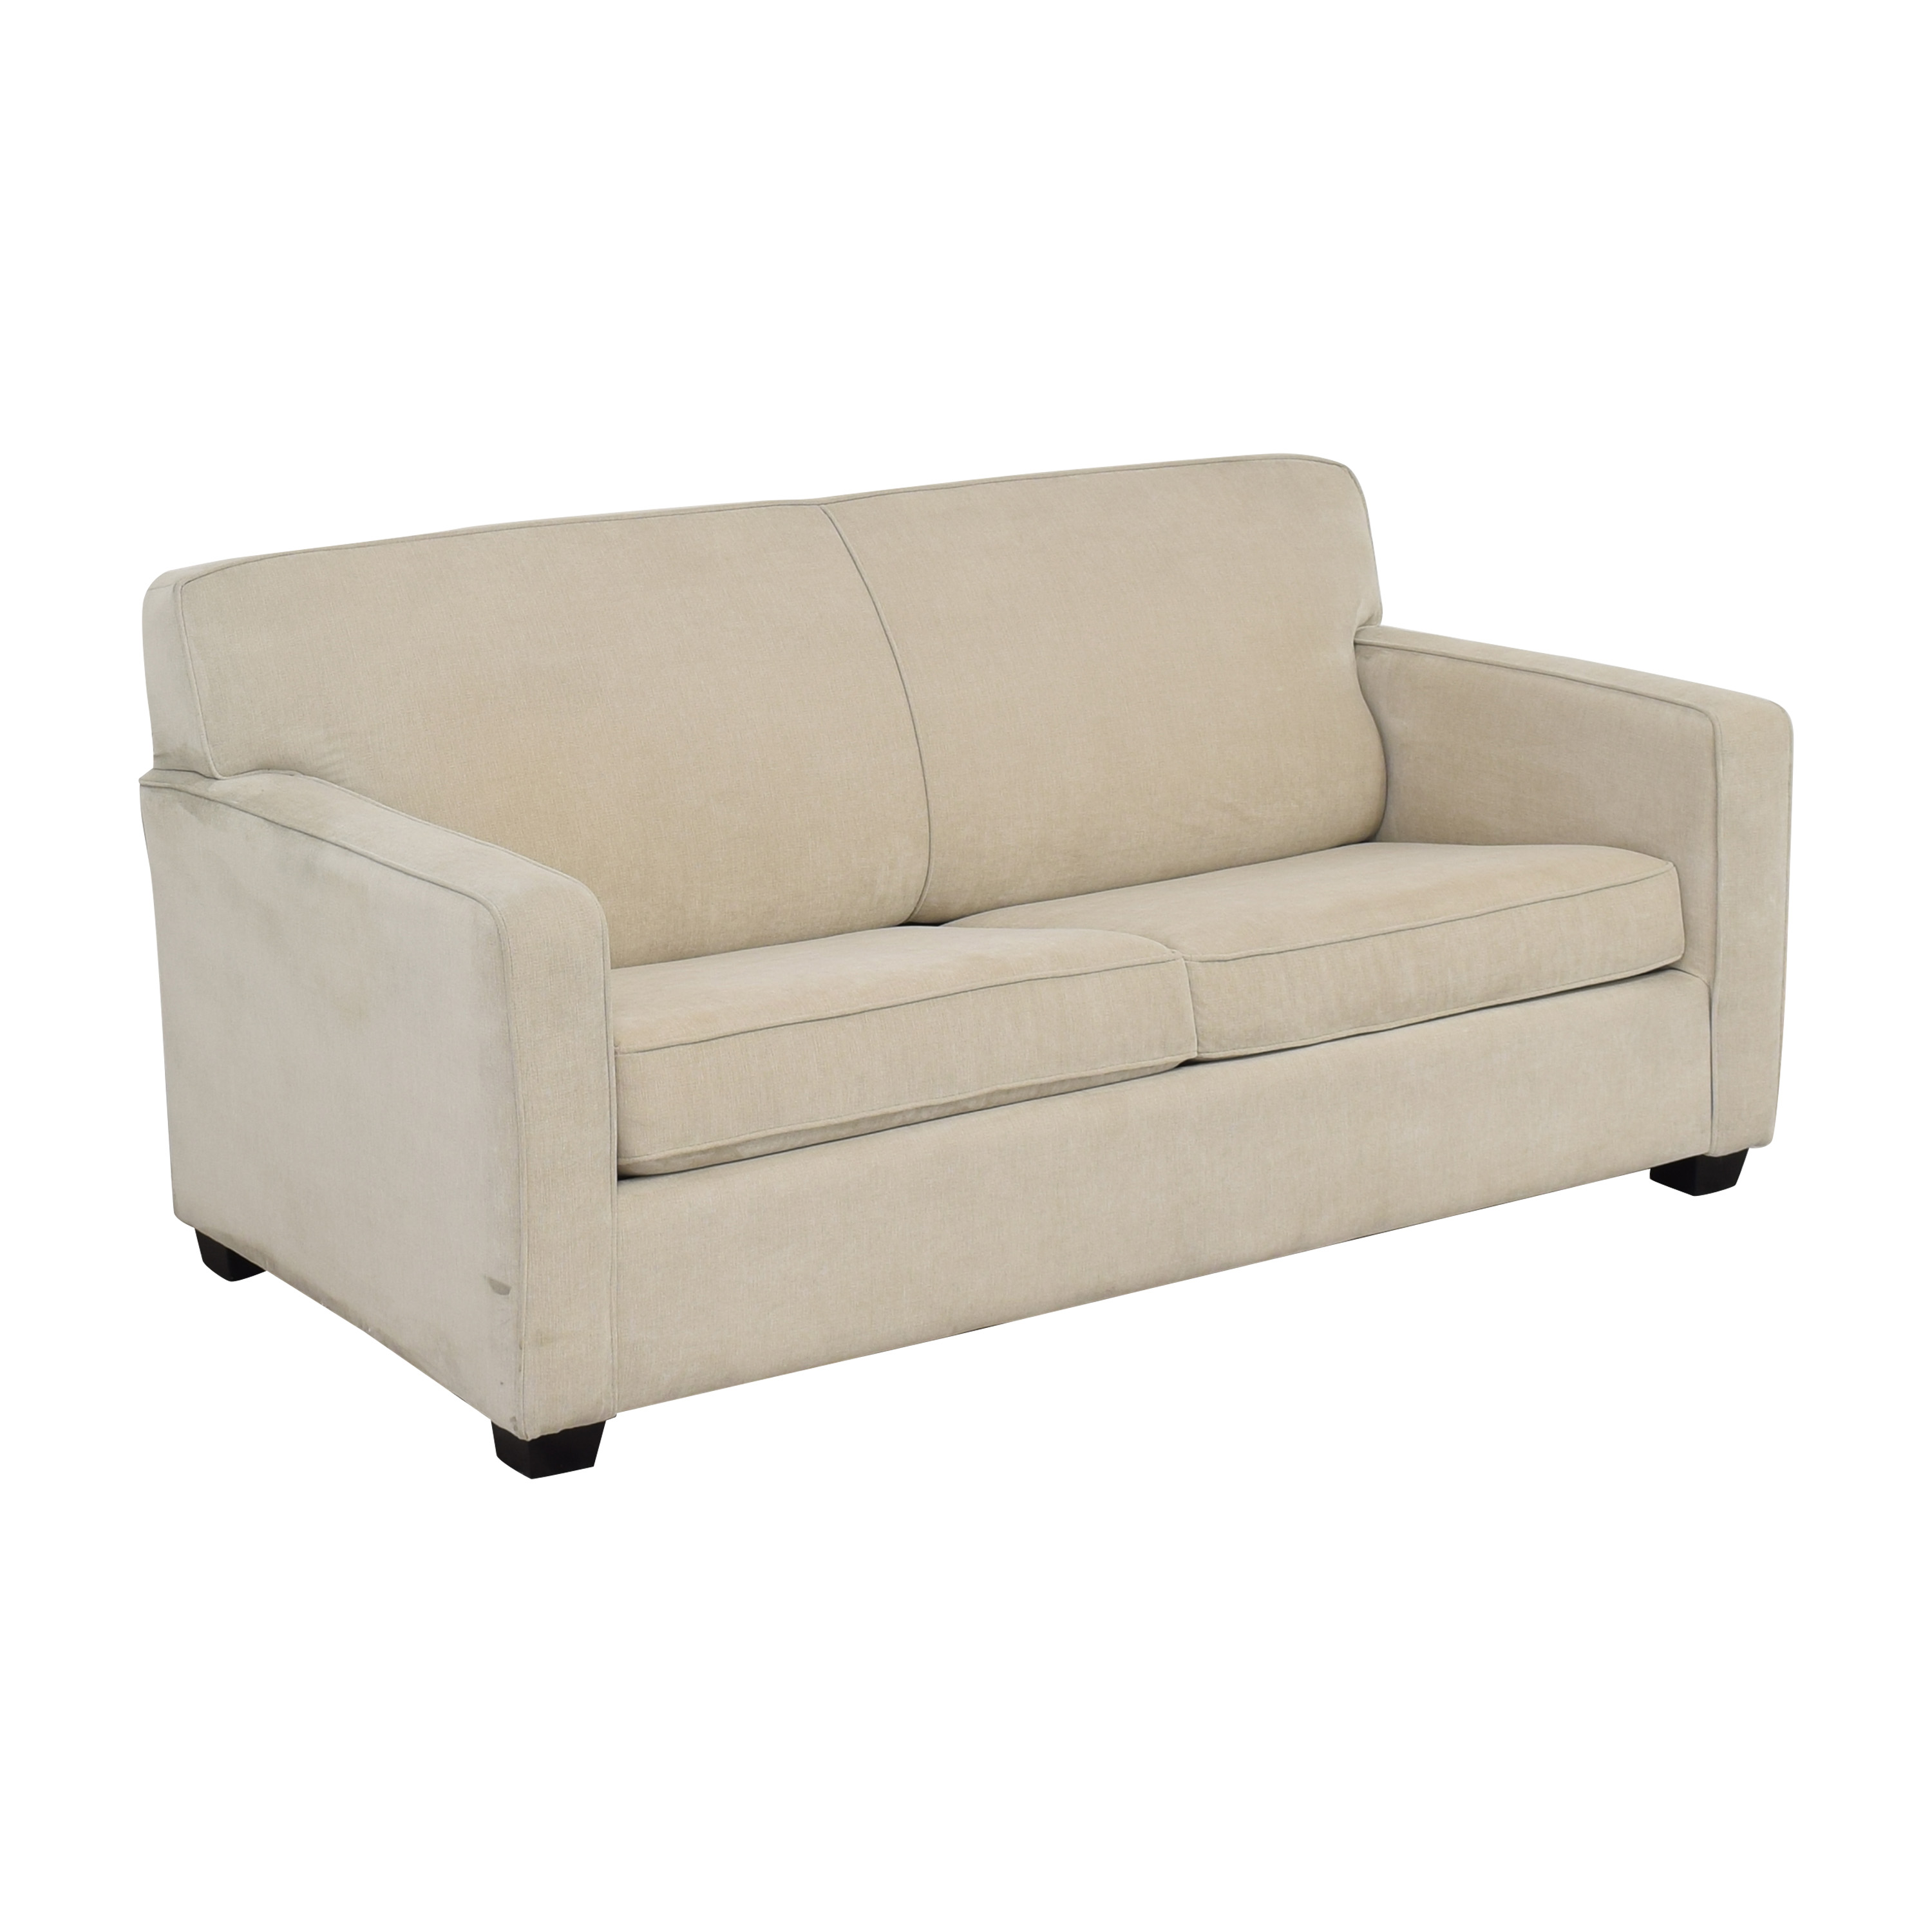 shop  Two Cushion Sleeper Sofa with Pillows online